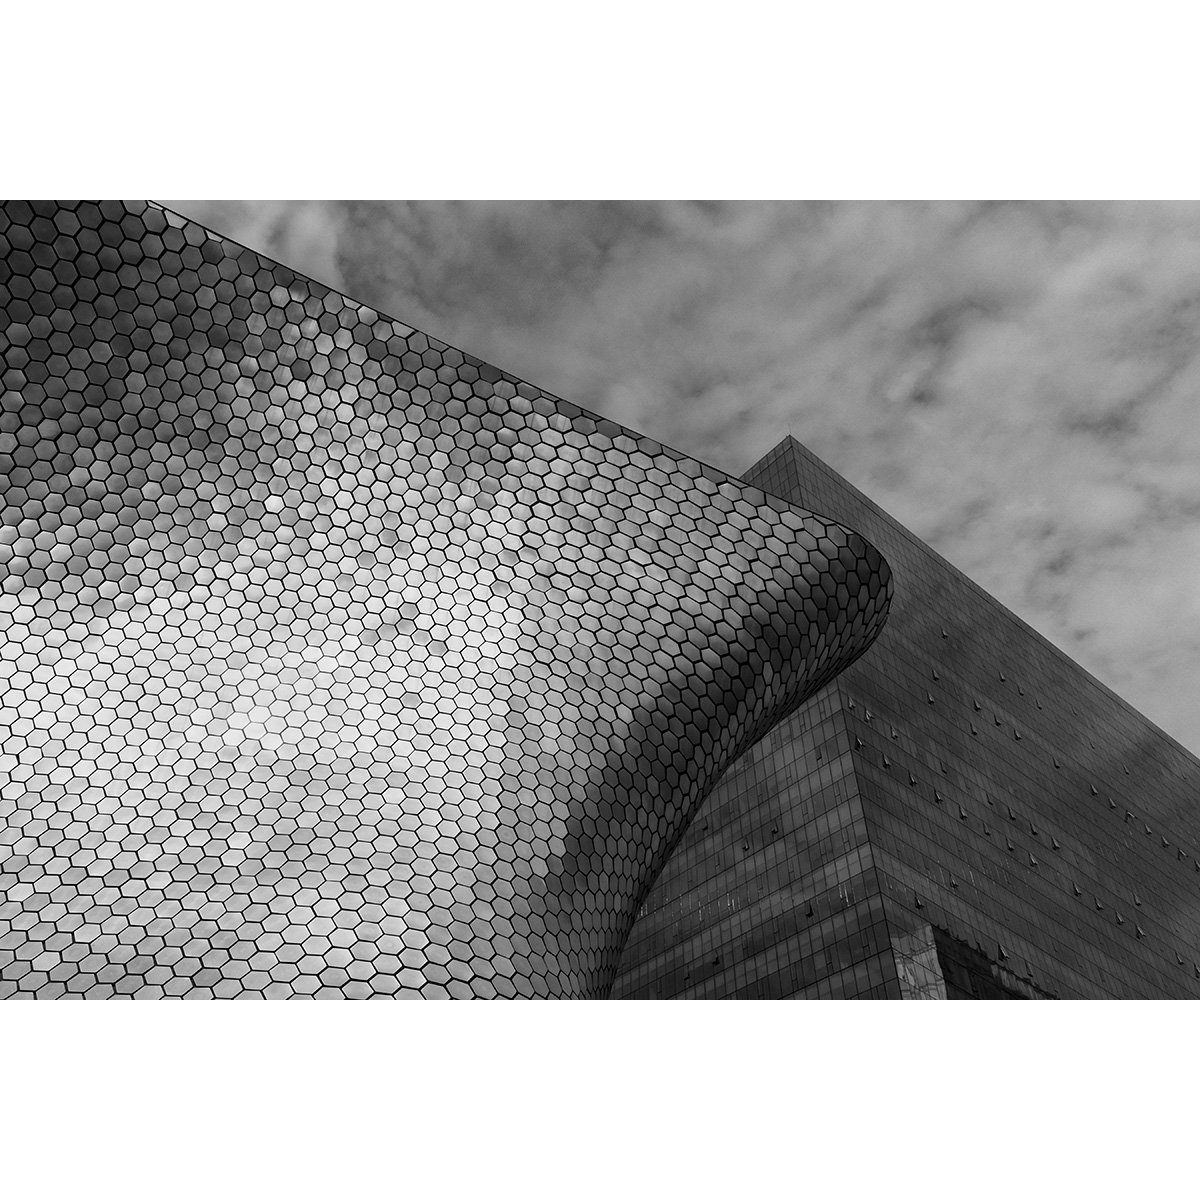 Museo Soumaya in Mexico City, Mexico.